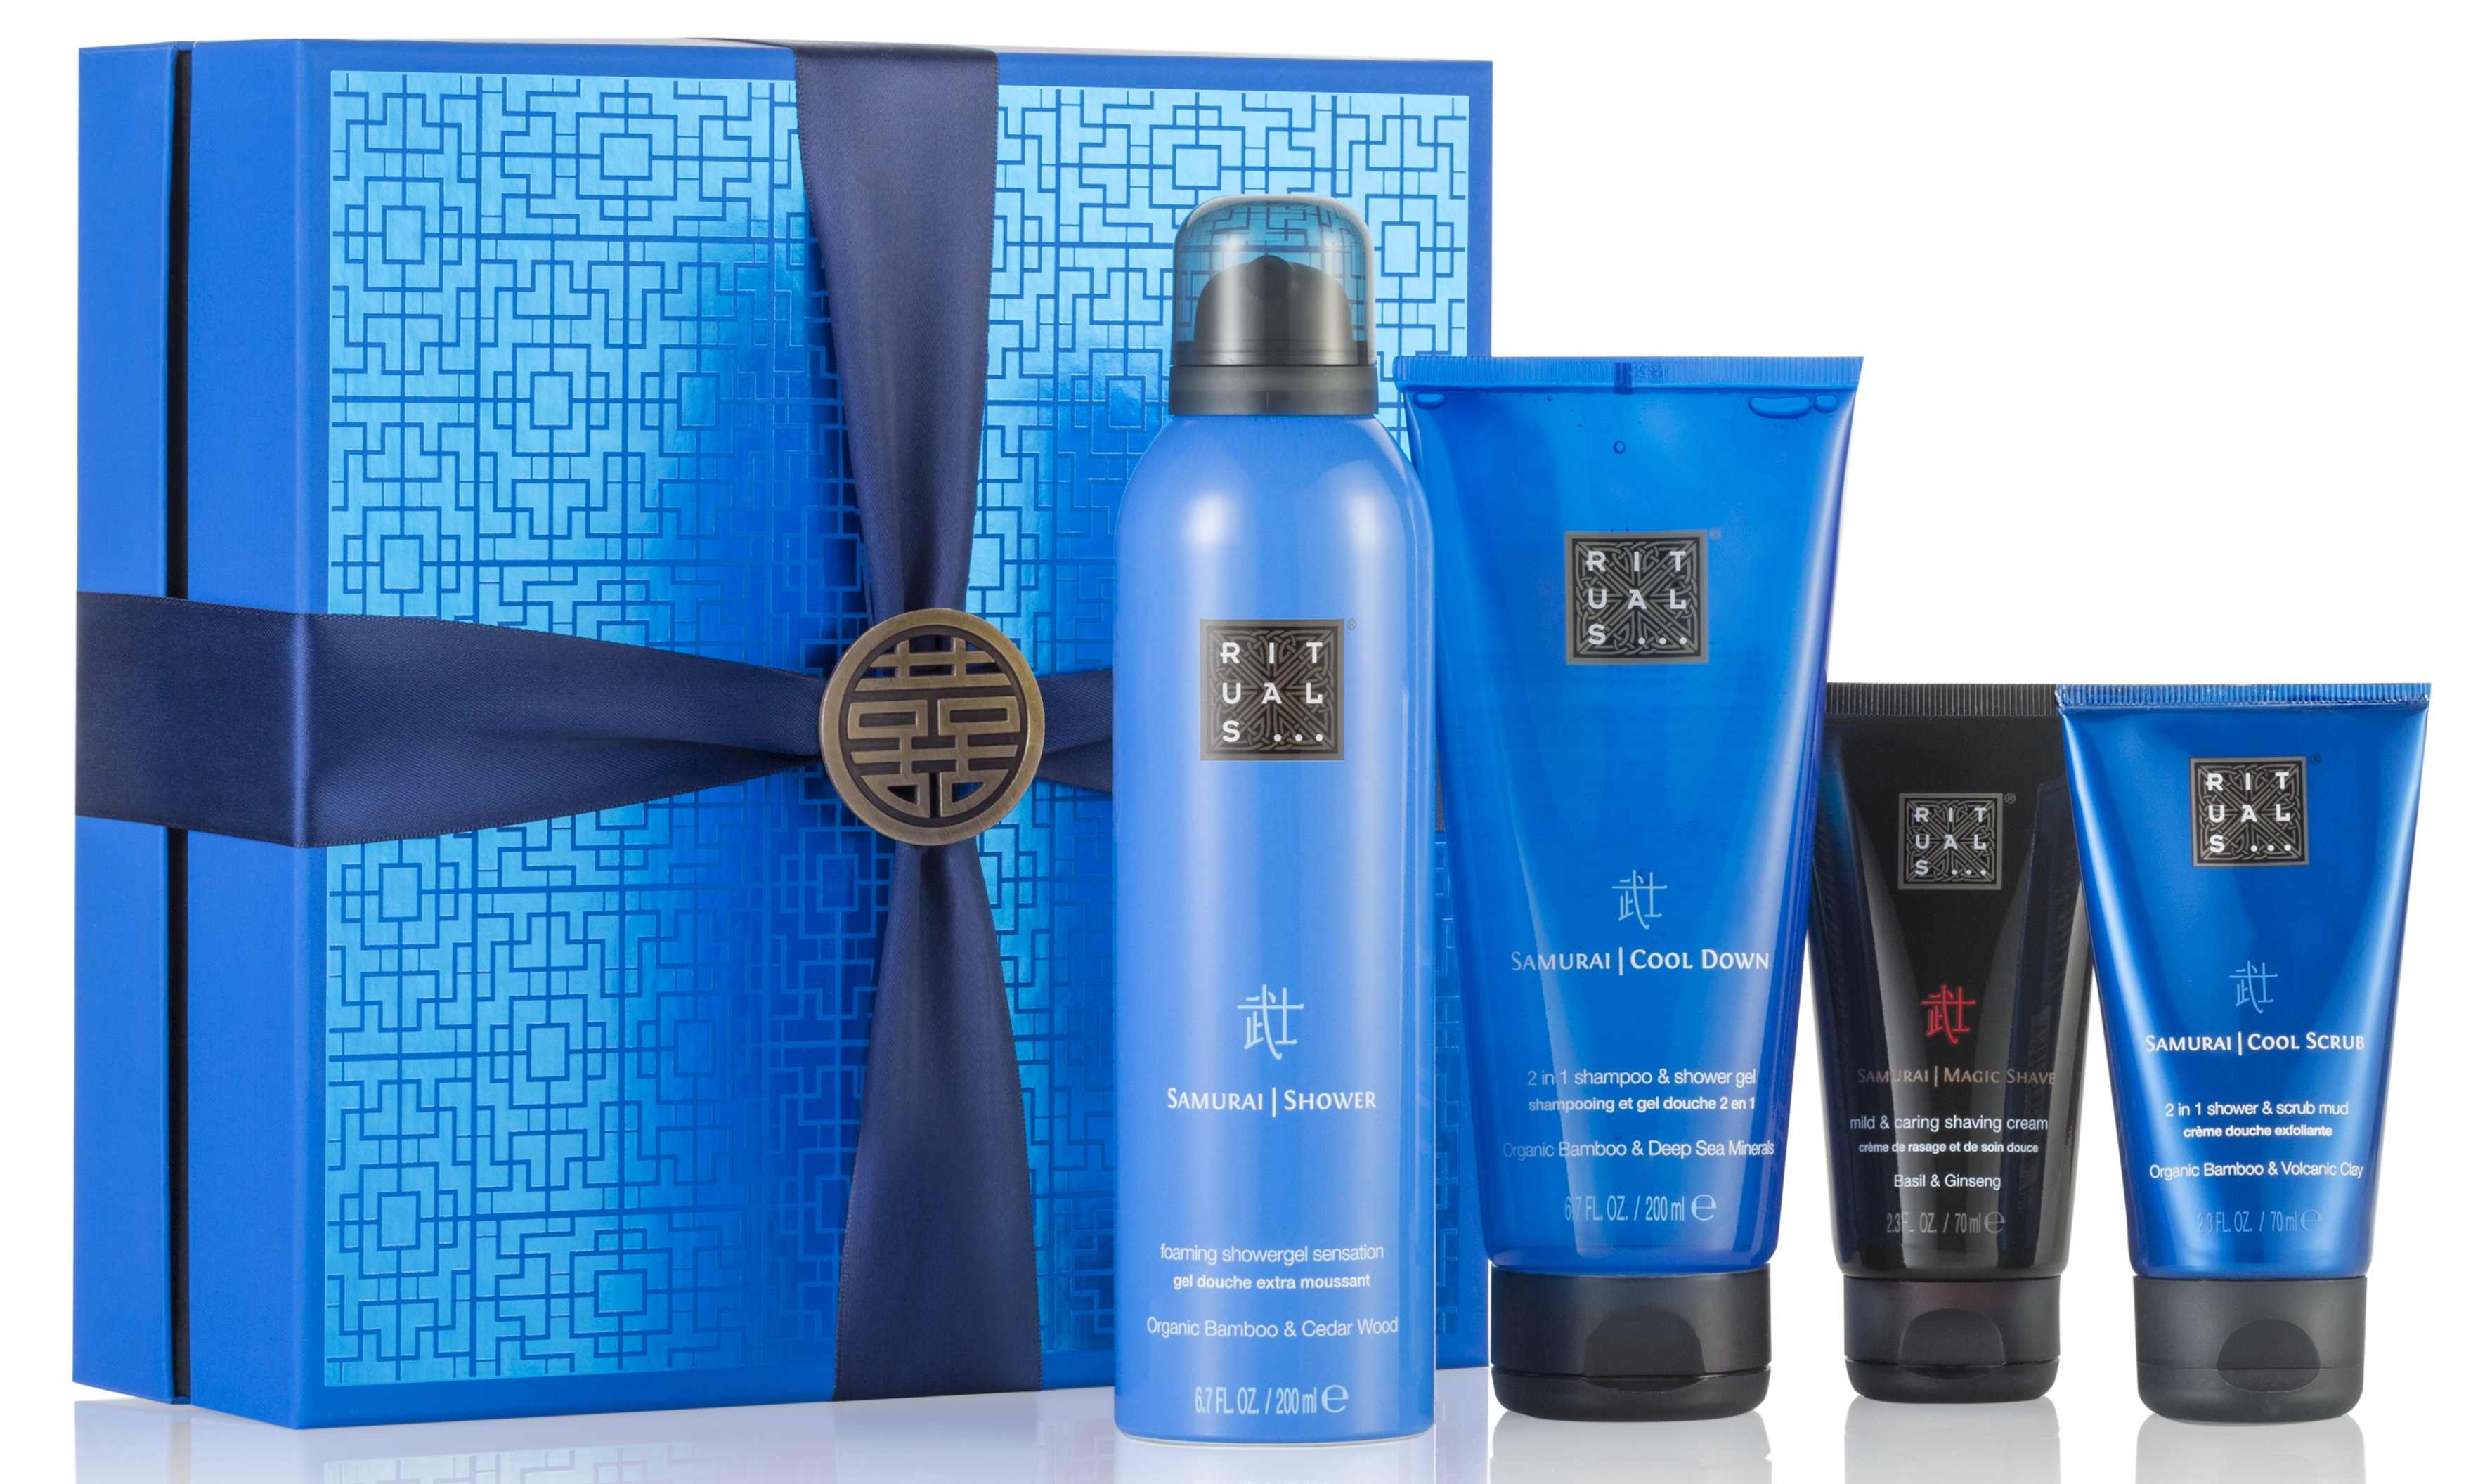 Rituals The Ritual of Samurai Body Refreshing Ritual Gift set